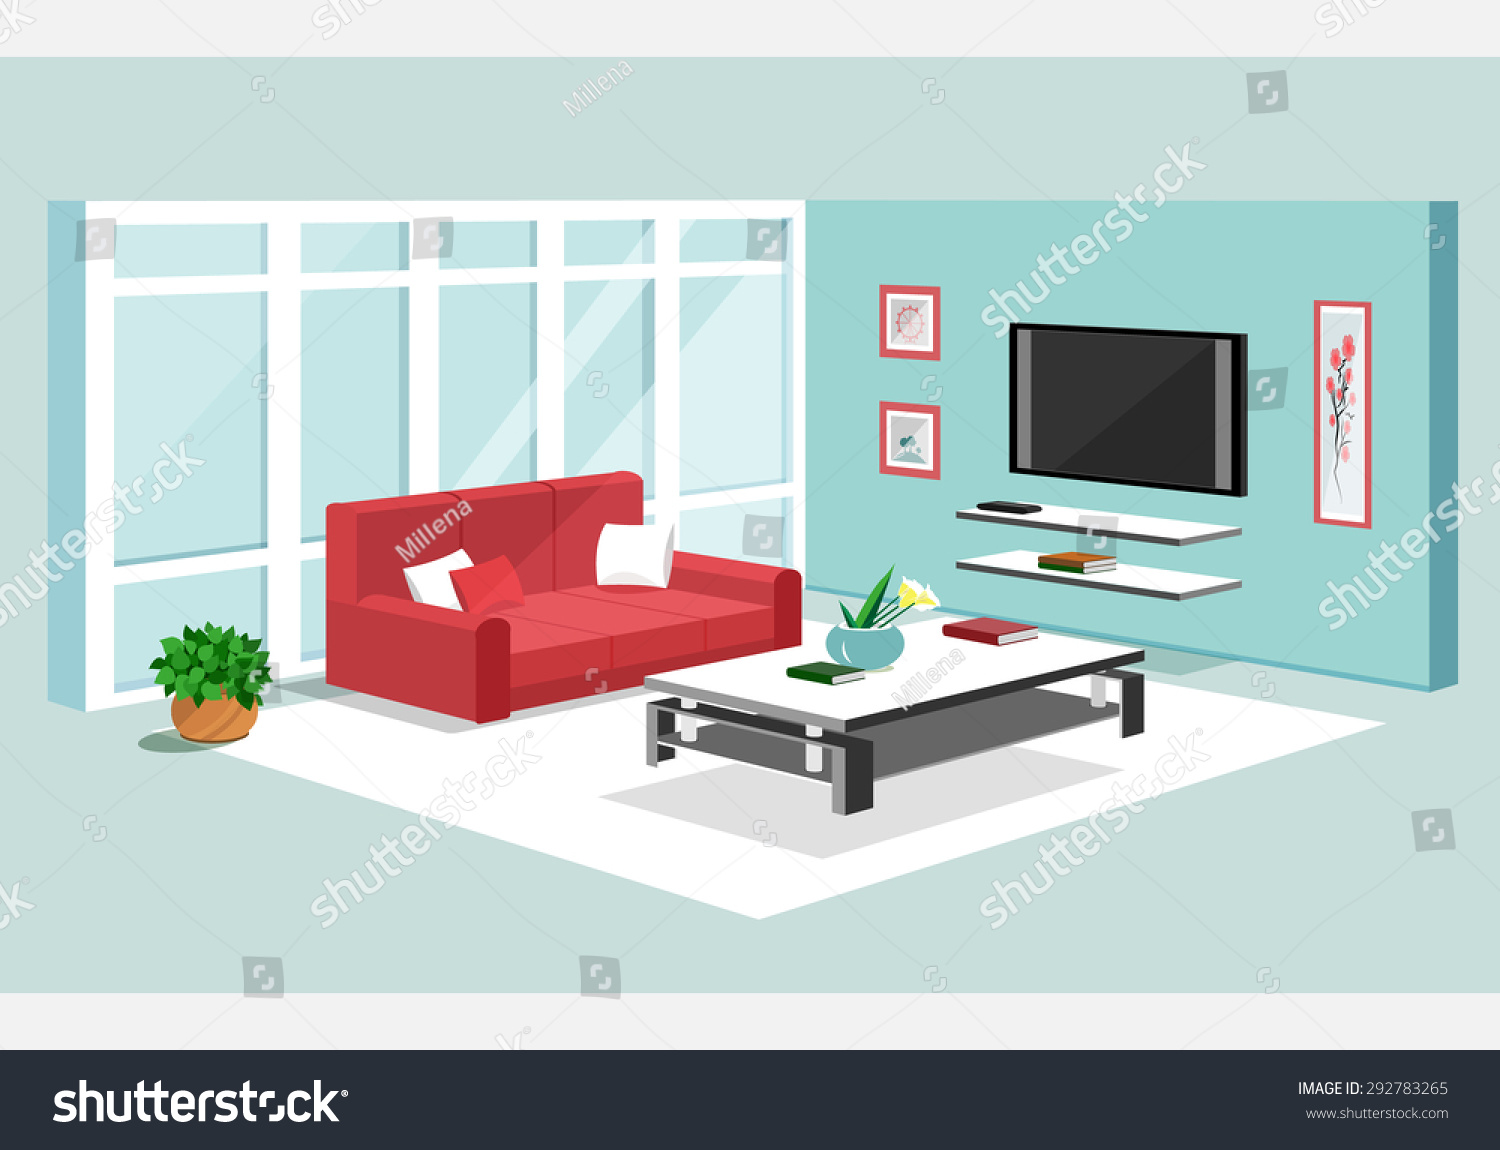 3d isometric design apartment modern graphic stock vector for Pictures of apartment living rooms